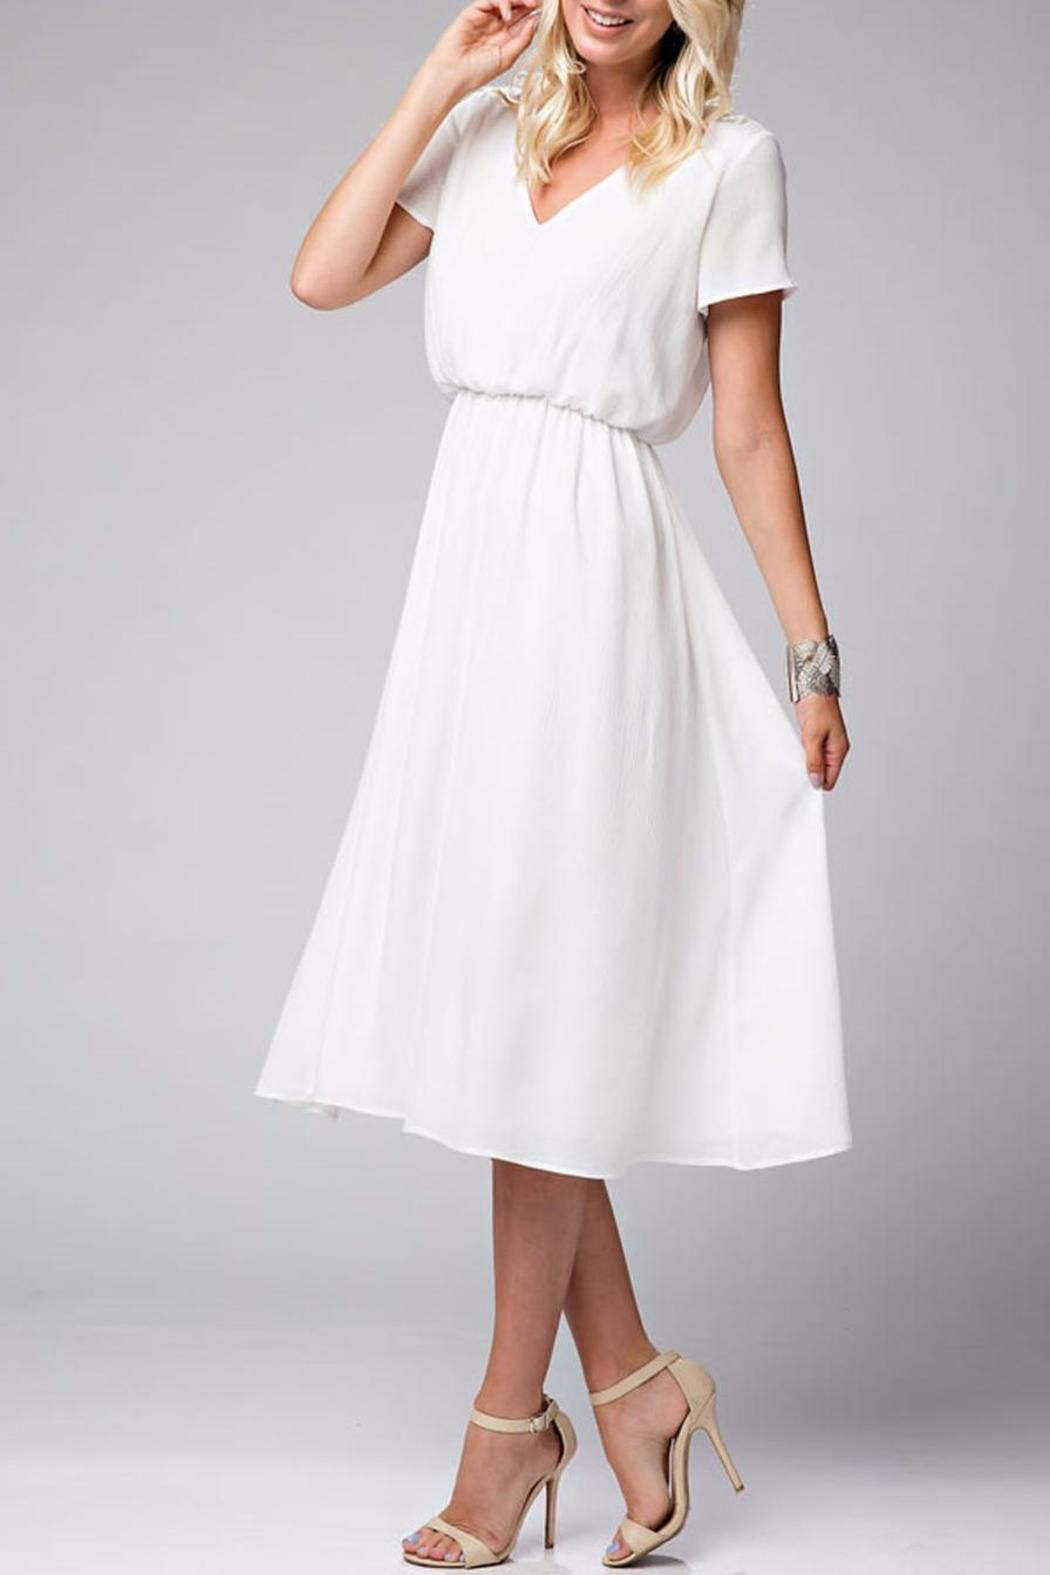 9bbbb76d2d2a Gorgeous white midi chiffon dress featuring a v neck short sleeves and an  elastic waist. Lightweight flowy fabric that drapes well.